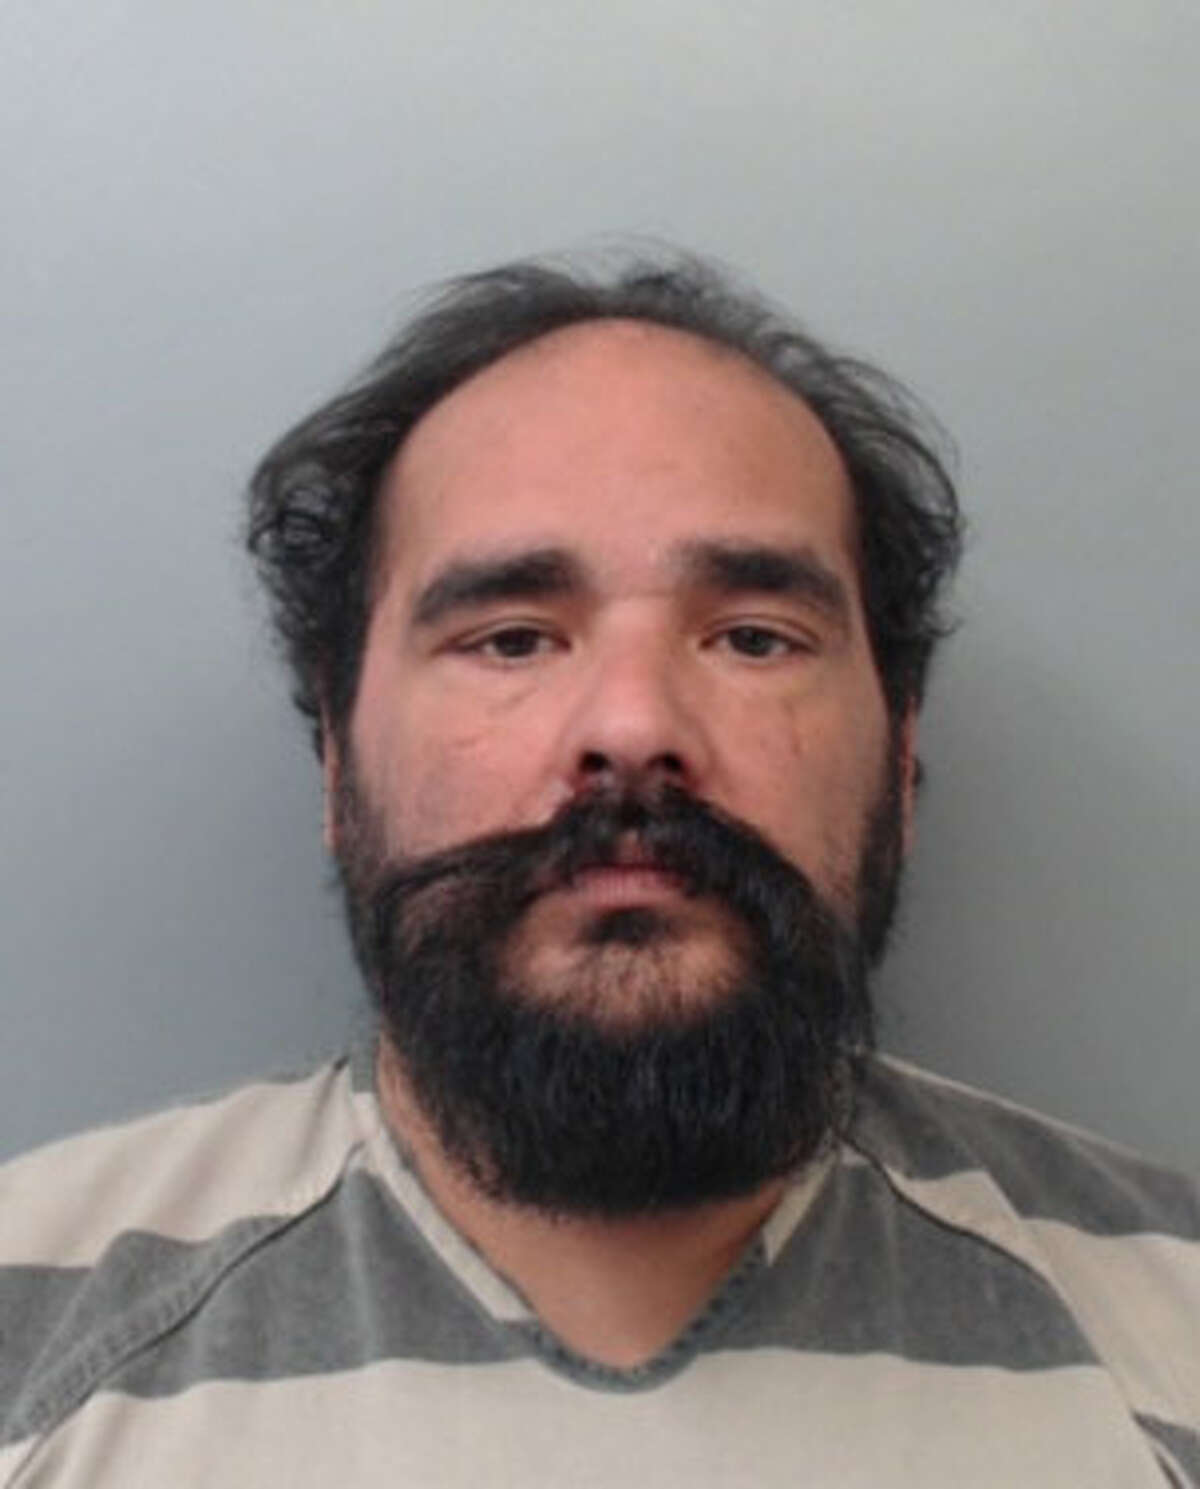 Troy Alardin, 51, was charged with arson and possession of marijuana.